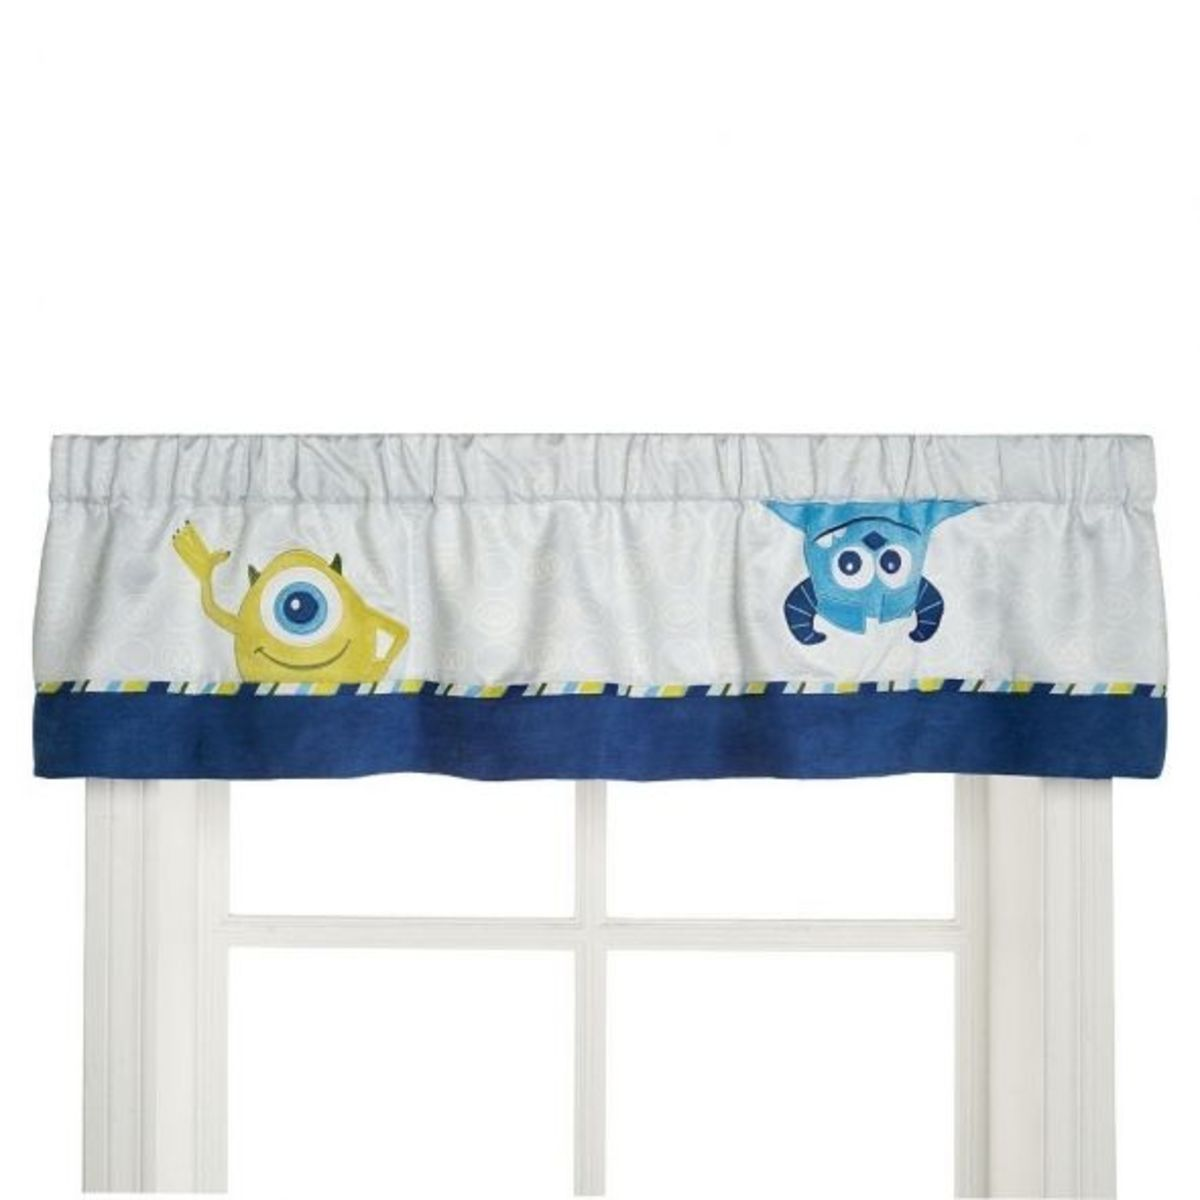 Monsters Inc. Nursery Valance